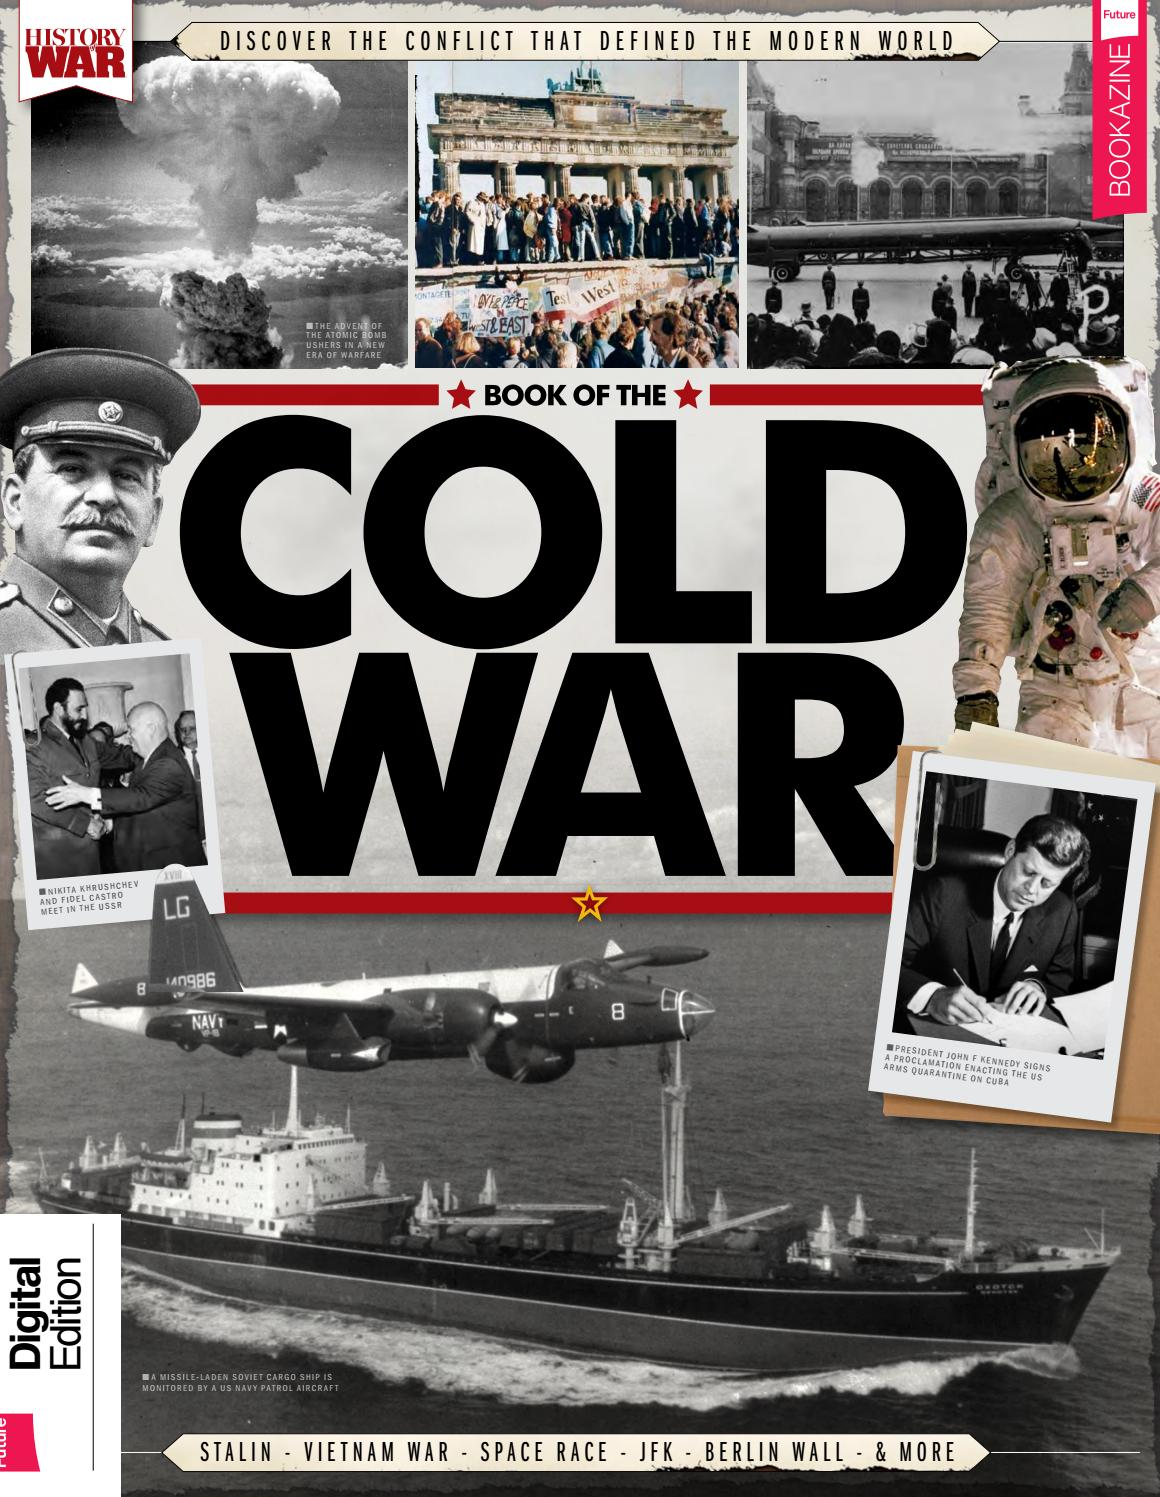 a historical analysis of the cold war The cold war is considered to be a significant event in modern world history the cold war dominated a rather long time period: between 1945, or the end of the world war ii, and 1990, the collapse of.